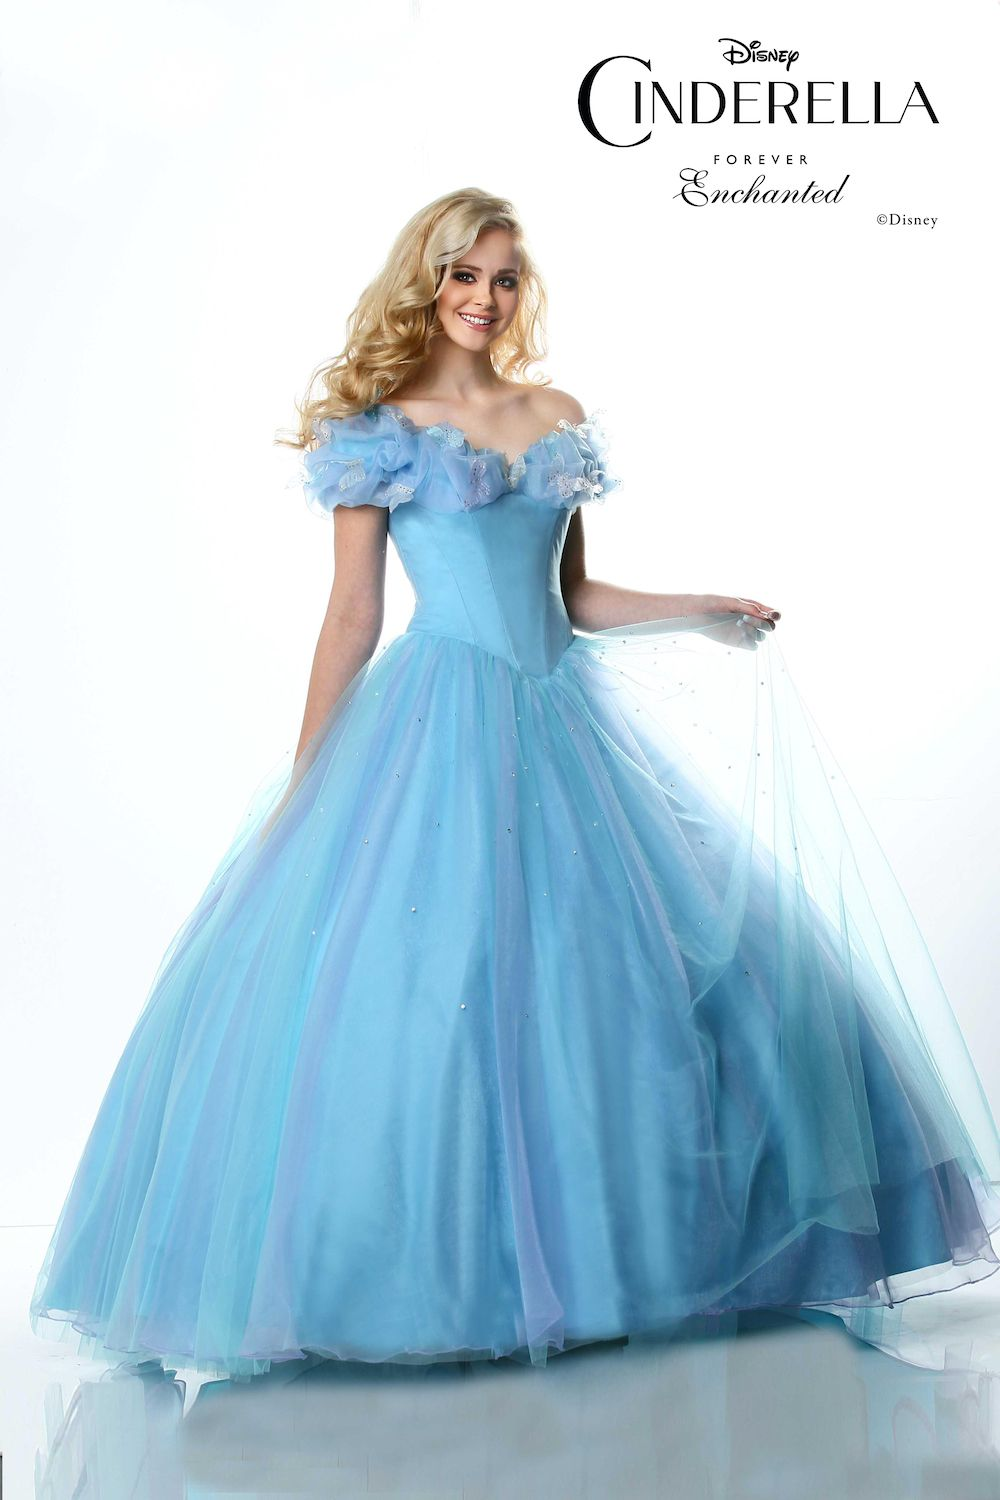 You Can Have Your Cinderella Prom Moment With This Dress ...